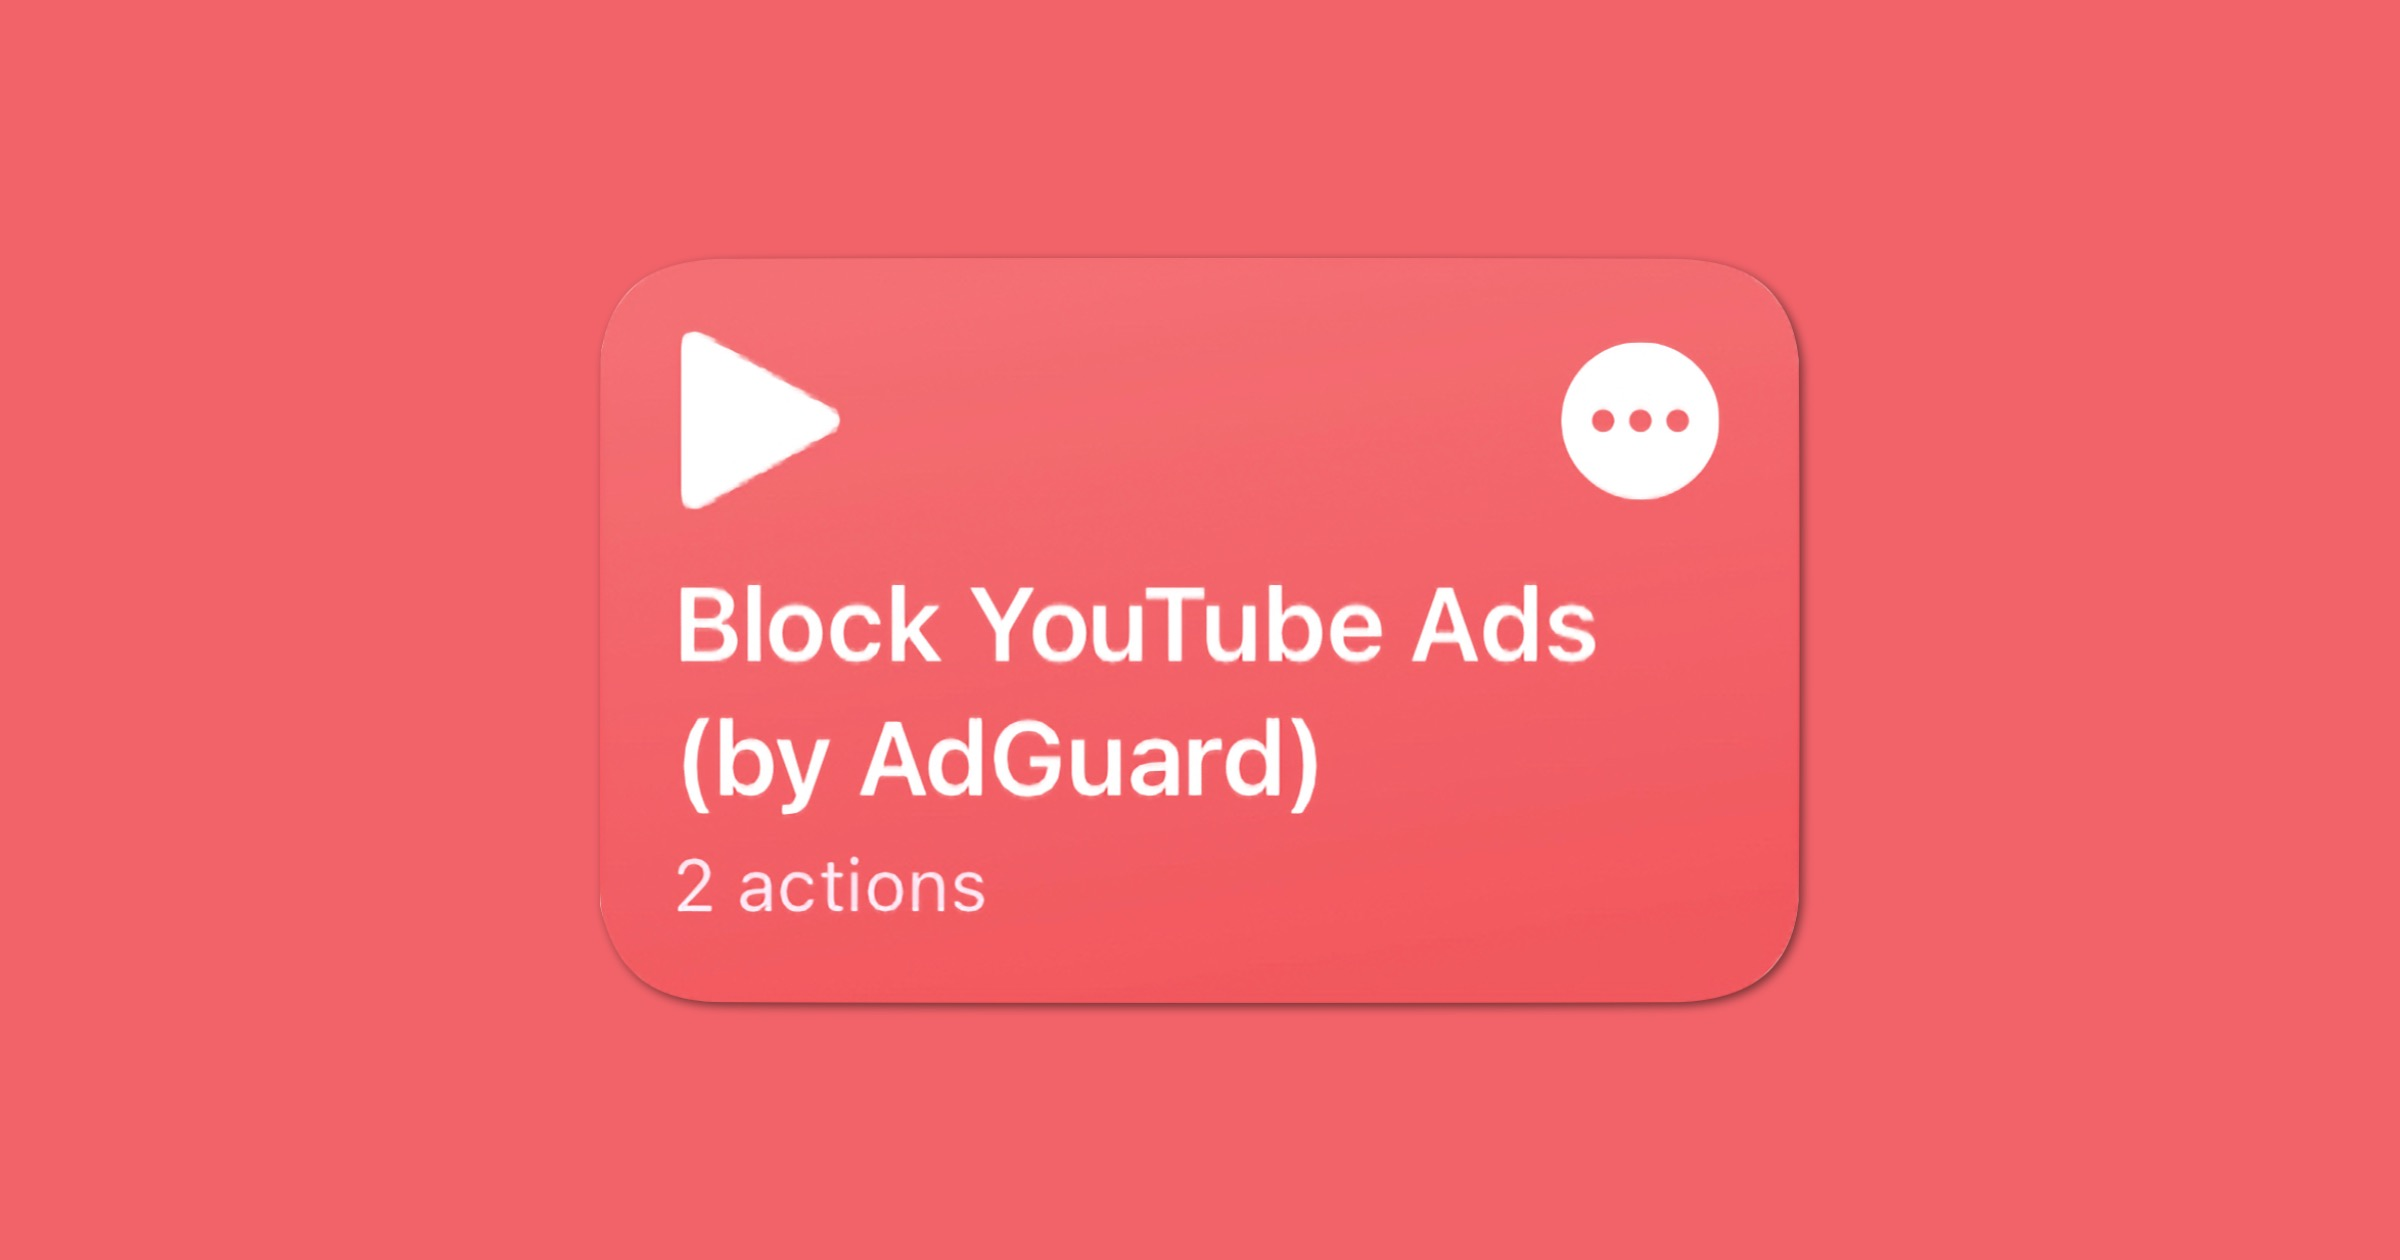 AdGuard's Shortcut Can Help Block YouTube Ads